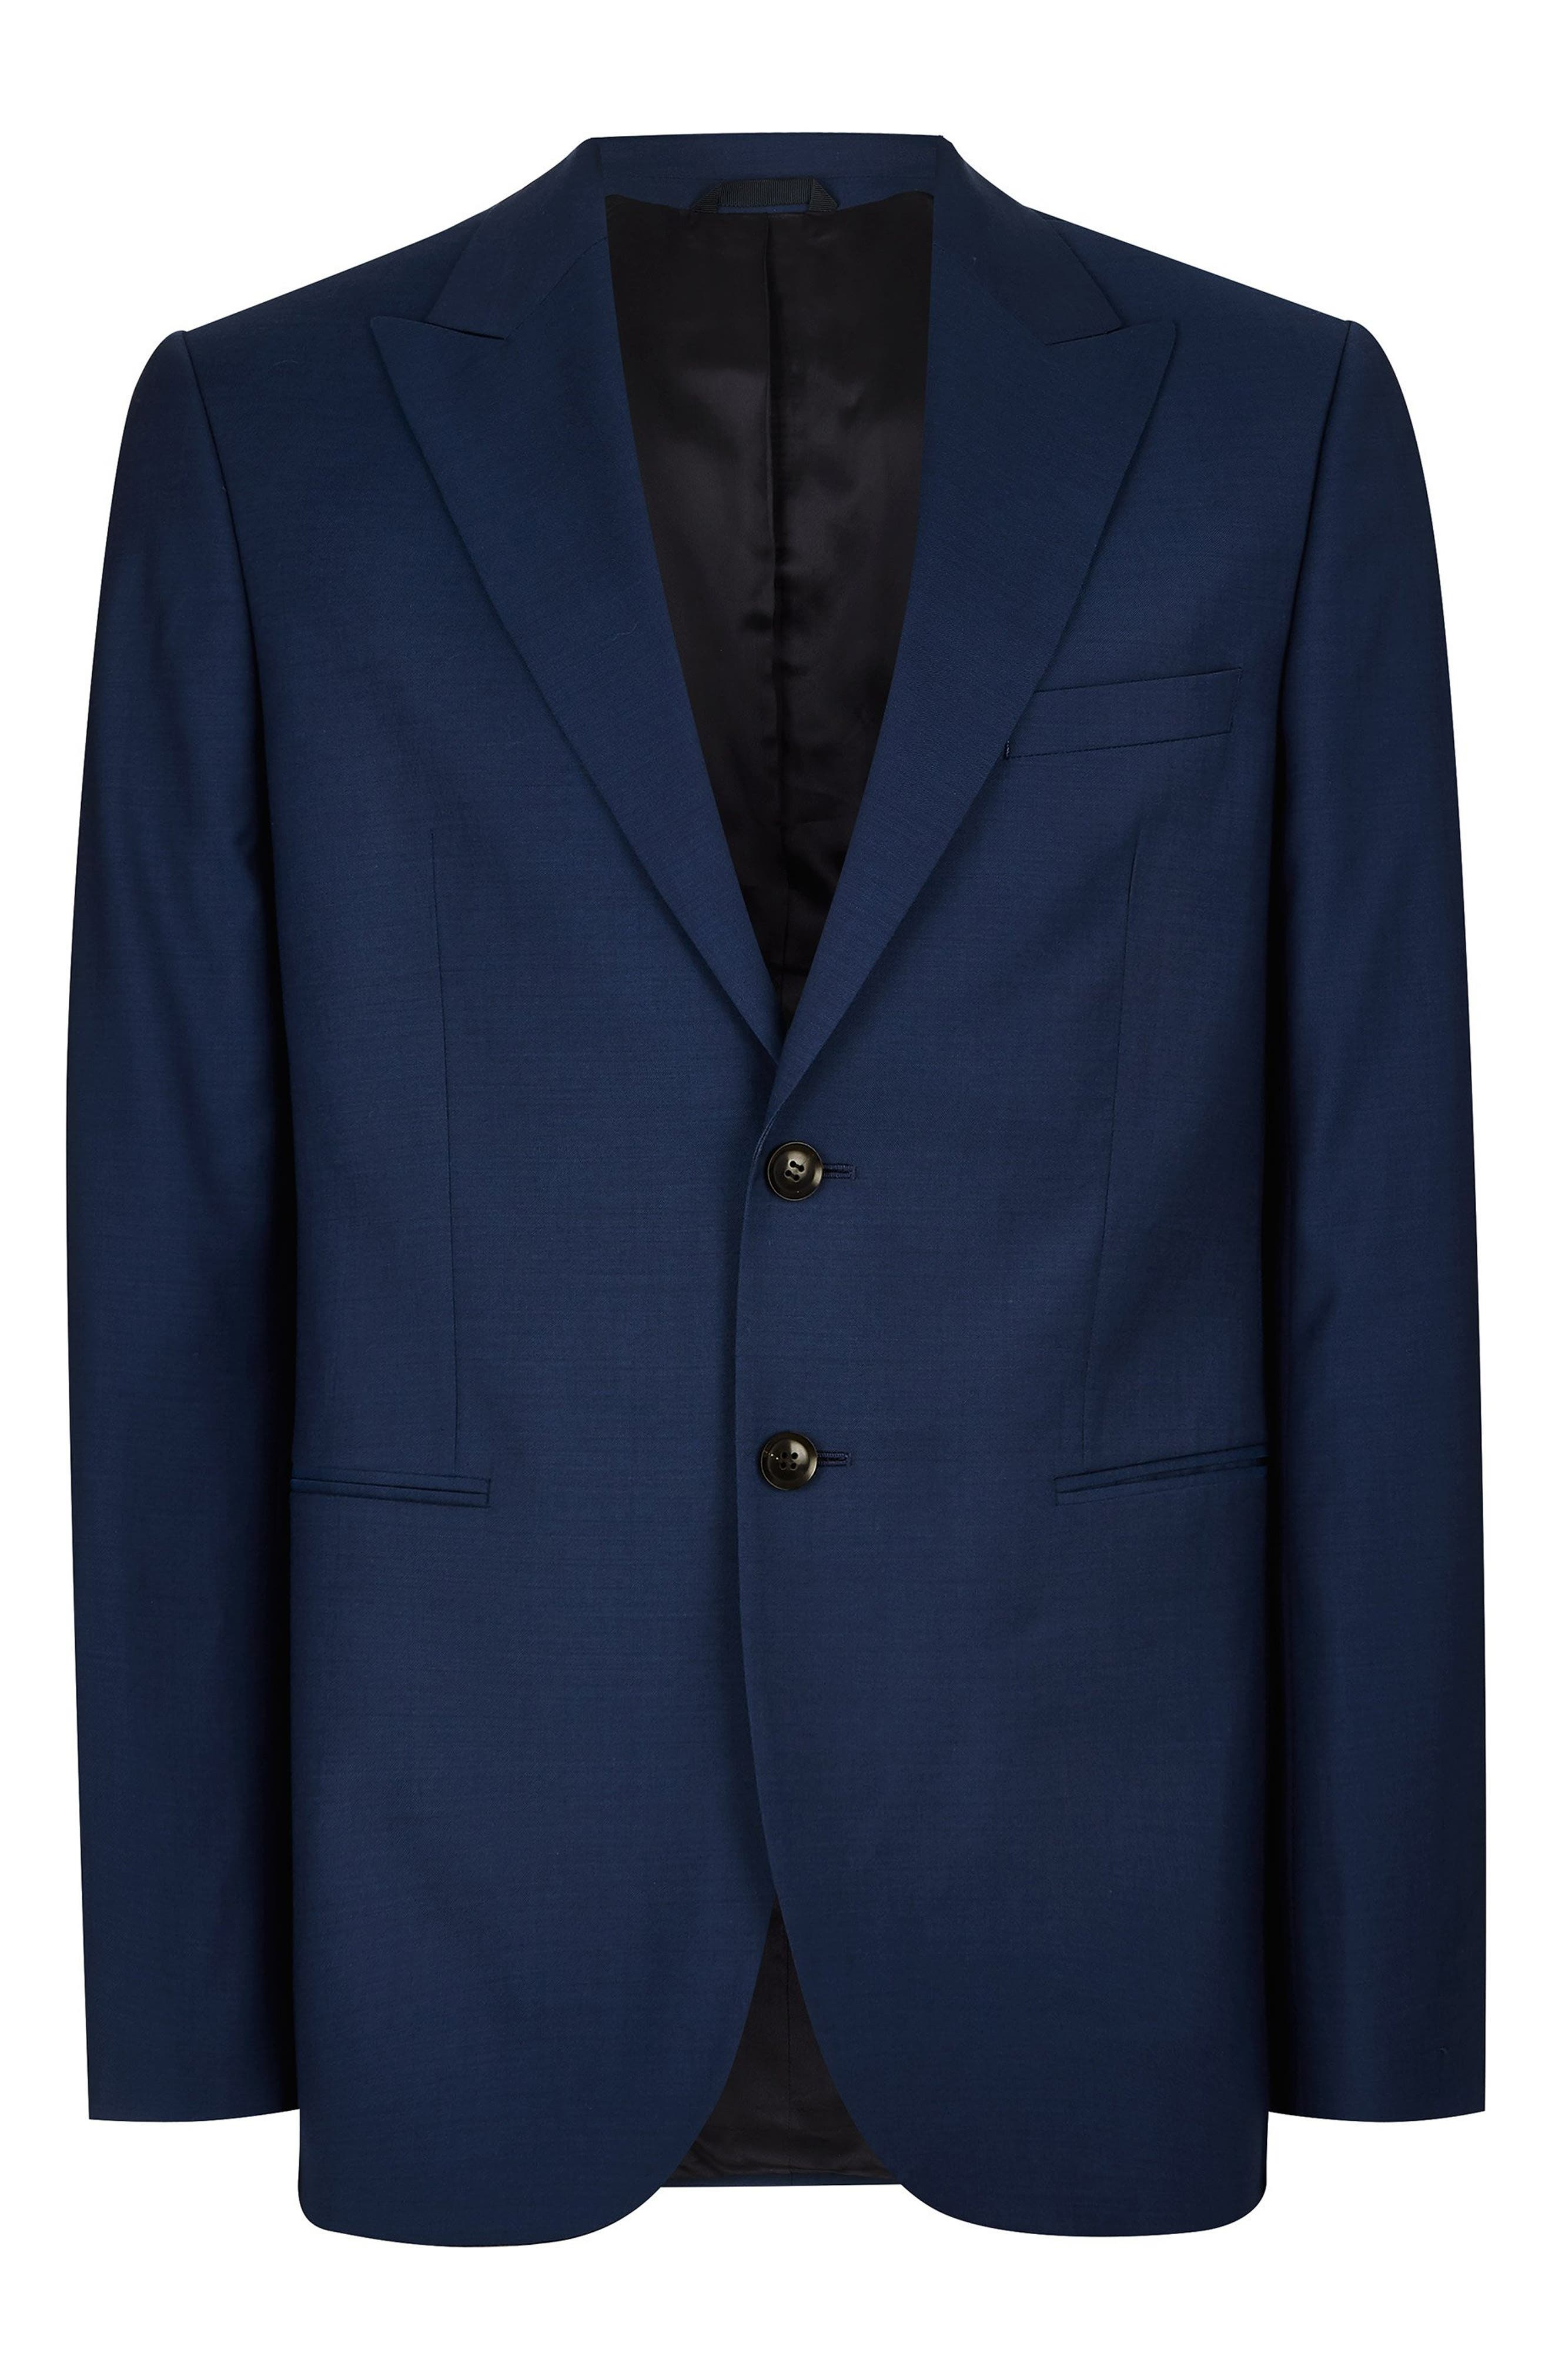 Casely Hayford Skinny Fit Suit Jacket,                             Alternate thumbnail 3, color,                             NAVY BLUE